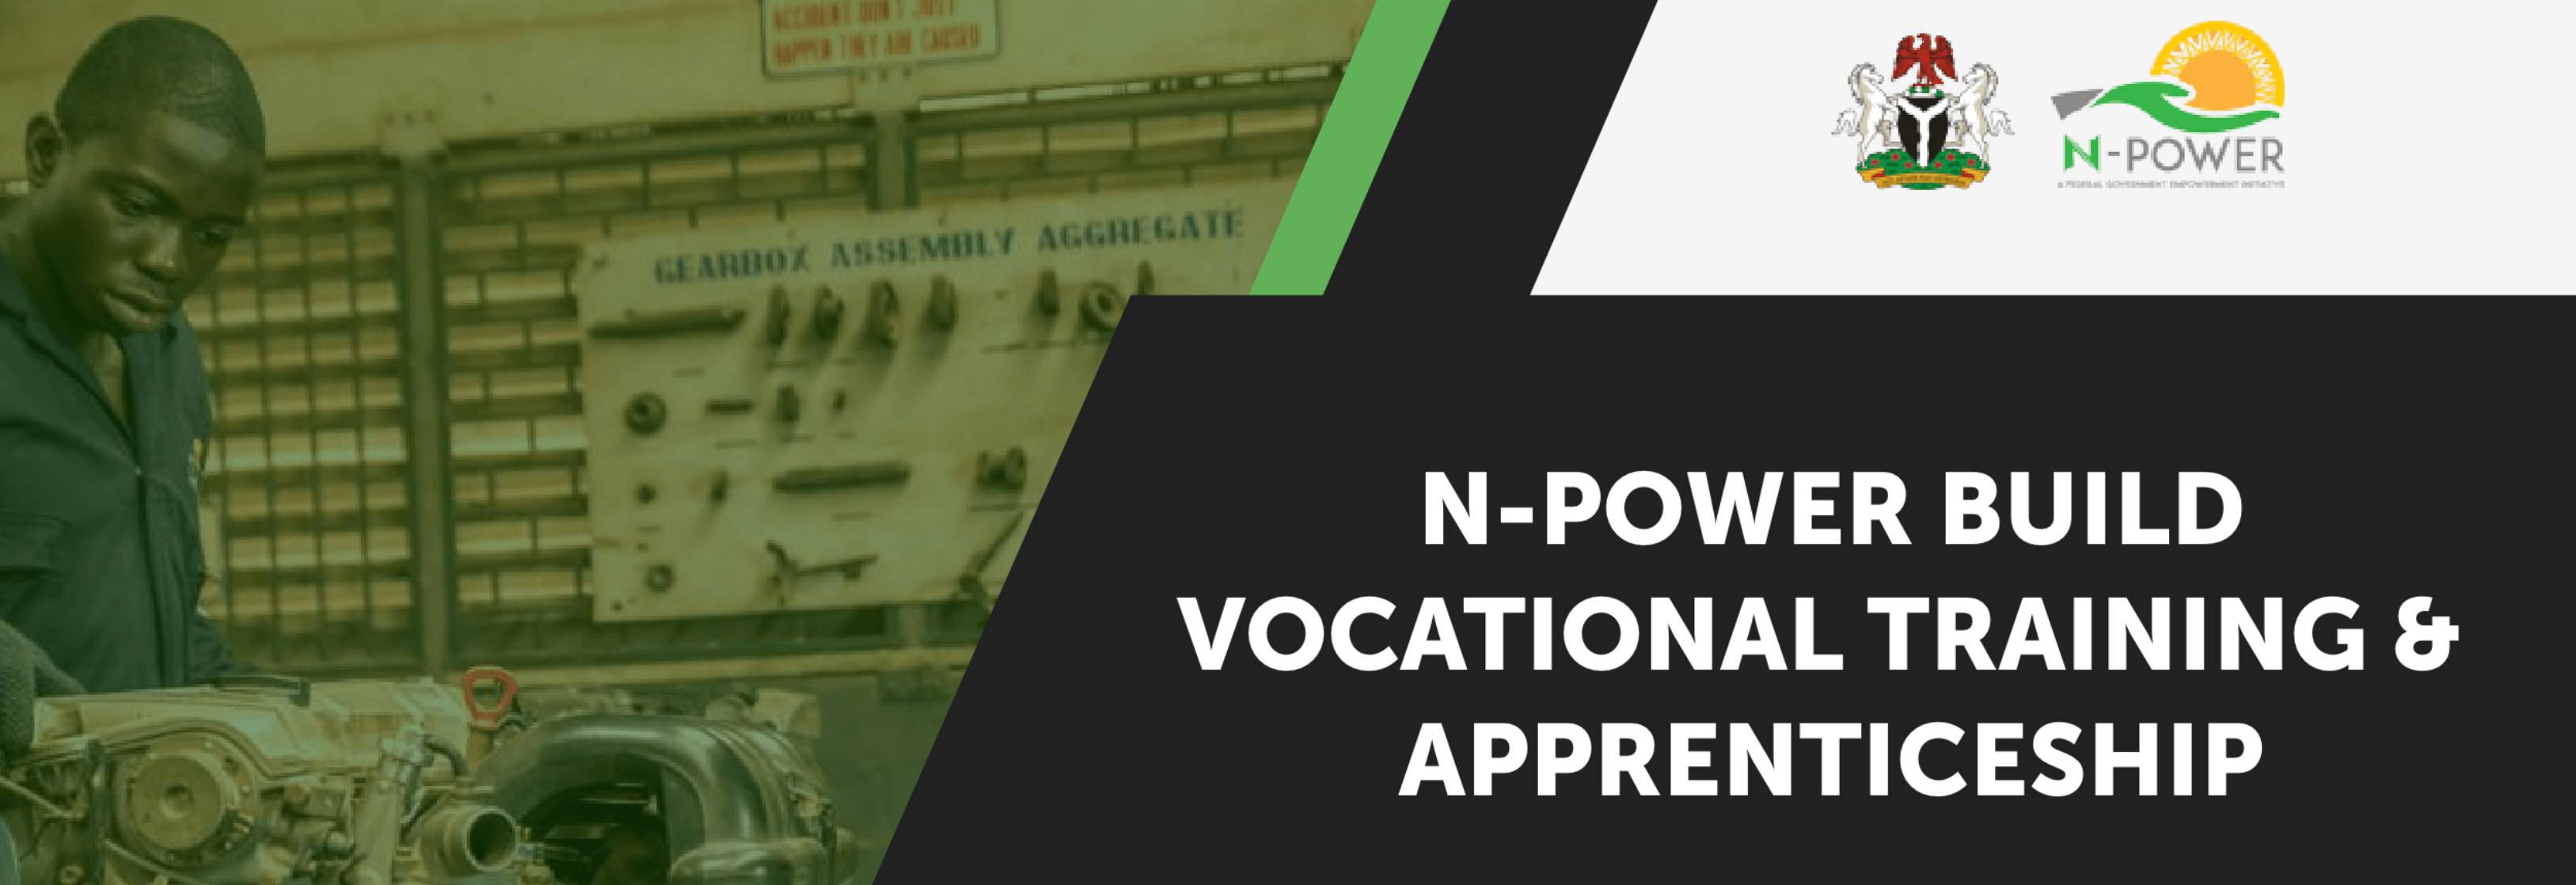 Npower Recruitment Shortlisted Candidate 2020